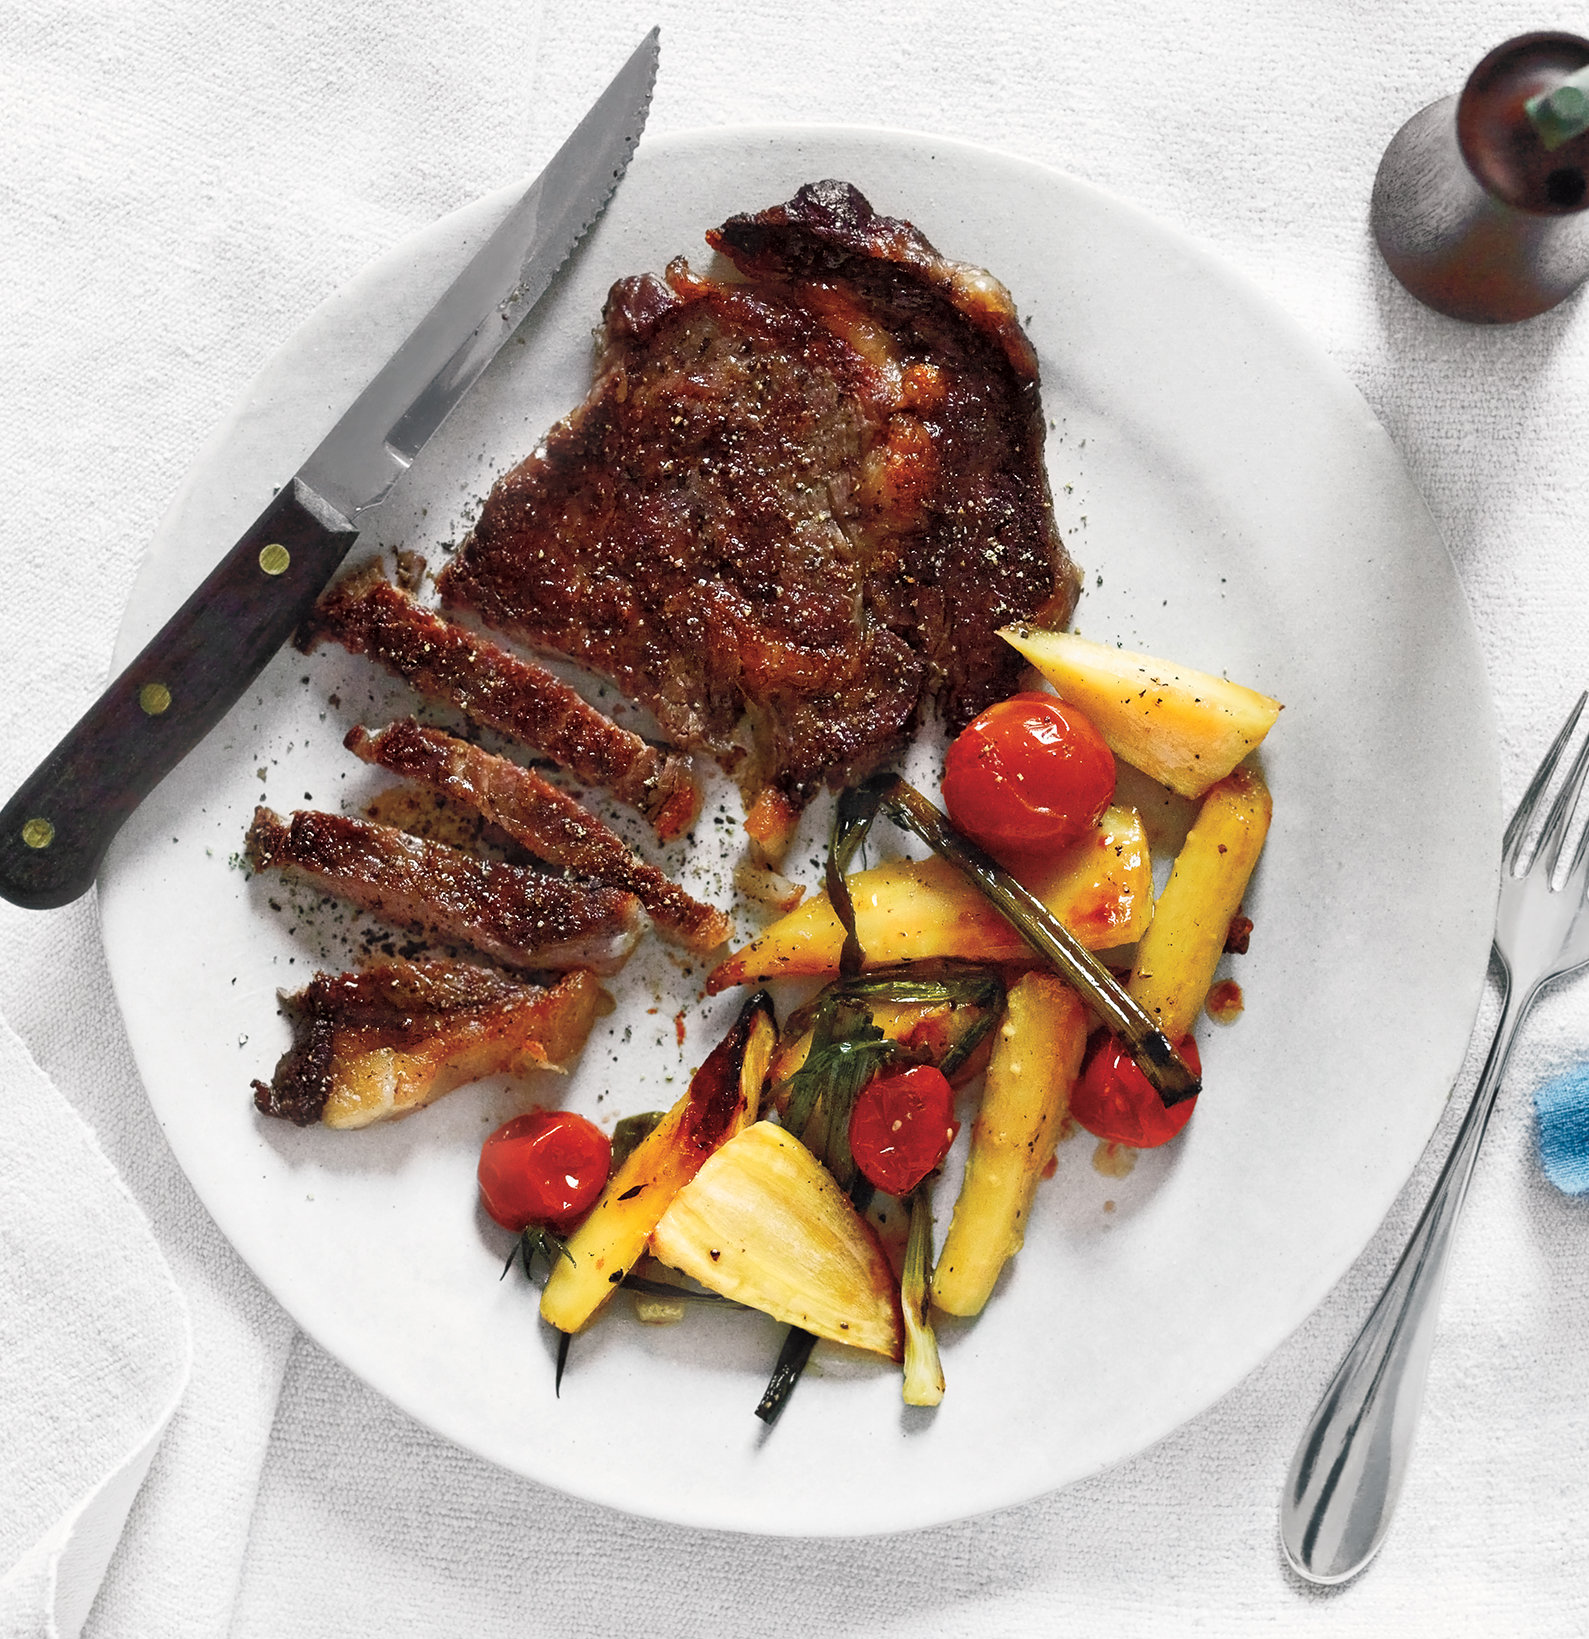 Quick Dinner Ideas: Steak With Roasted Parsnips, Tomatoes, and Scallions